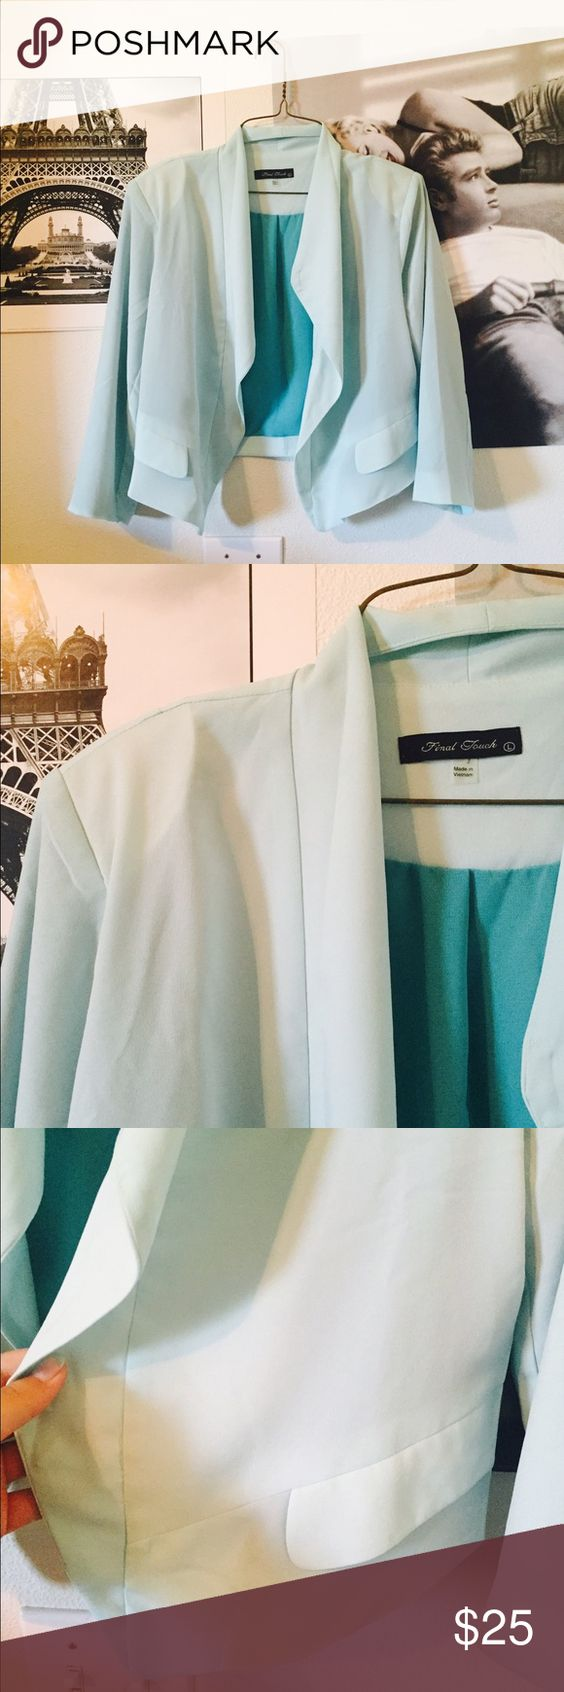 Turquoise Blazer Top Brand new. Never worn. Light turquoise color. Shoulder pads. Lined with a dark real color. Pocket sides. Open blazer style. Very cute! Can be dressed up or down. Final Touch Jackets & Coats Blazers